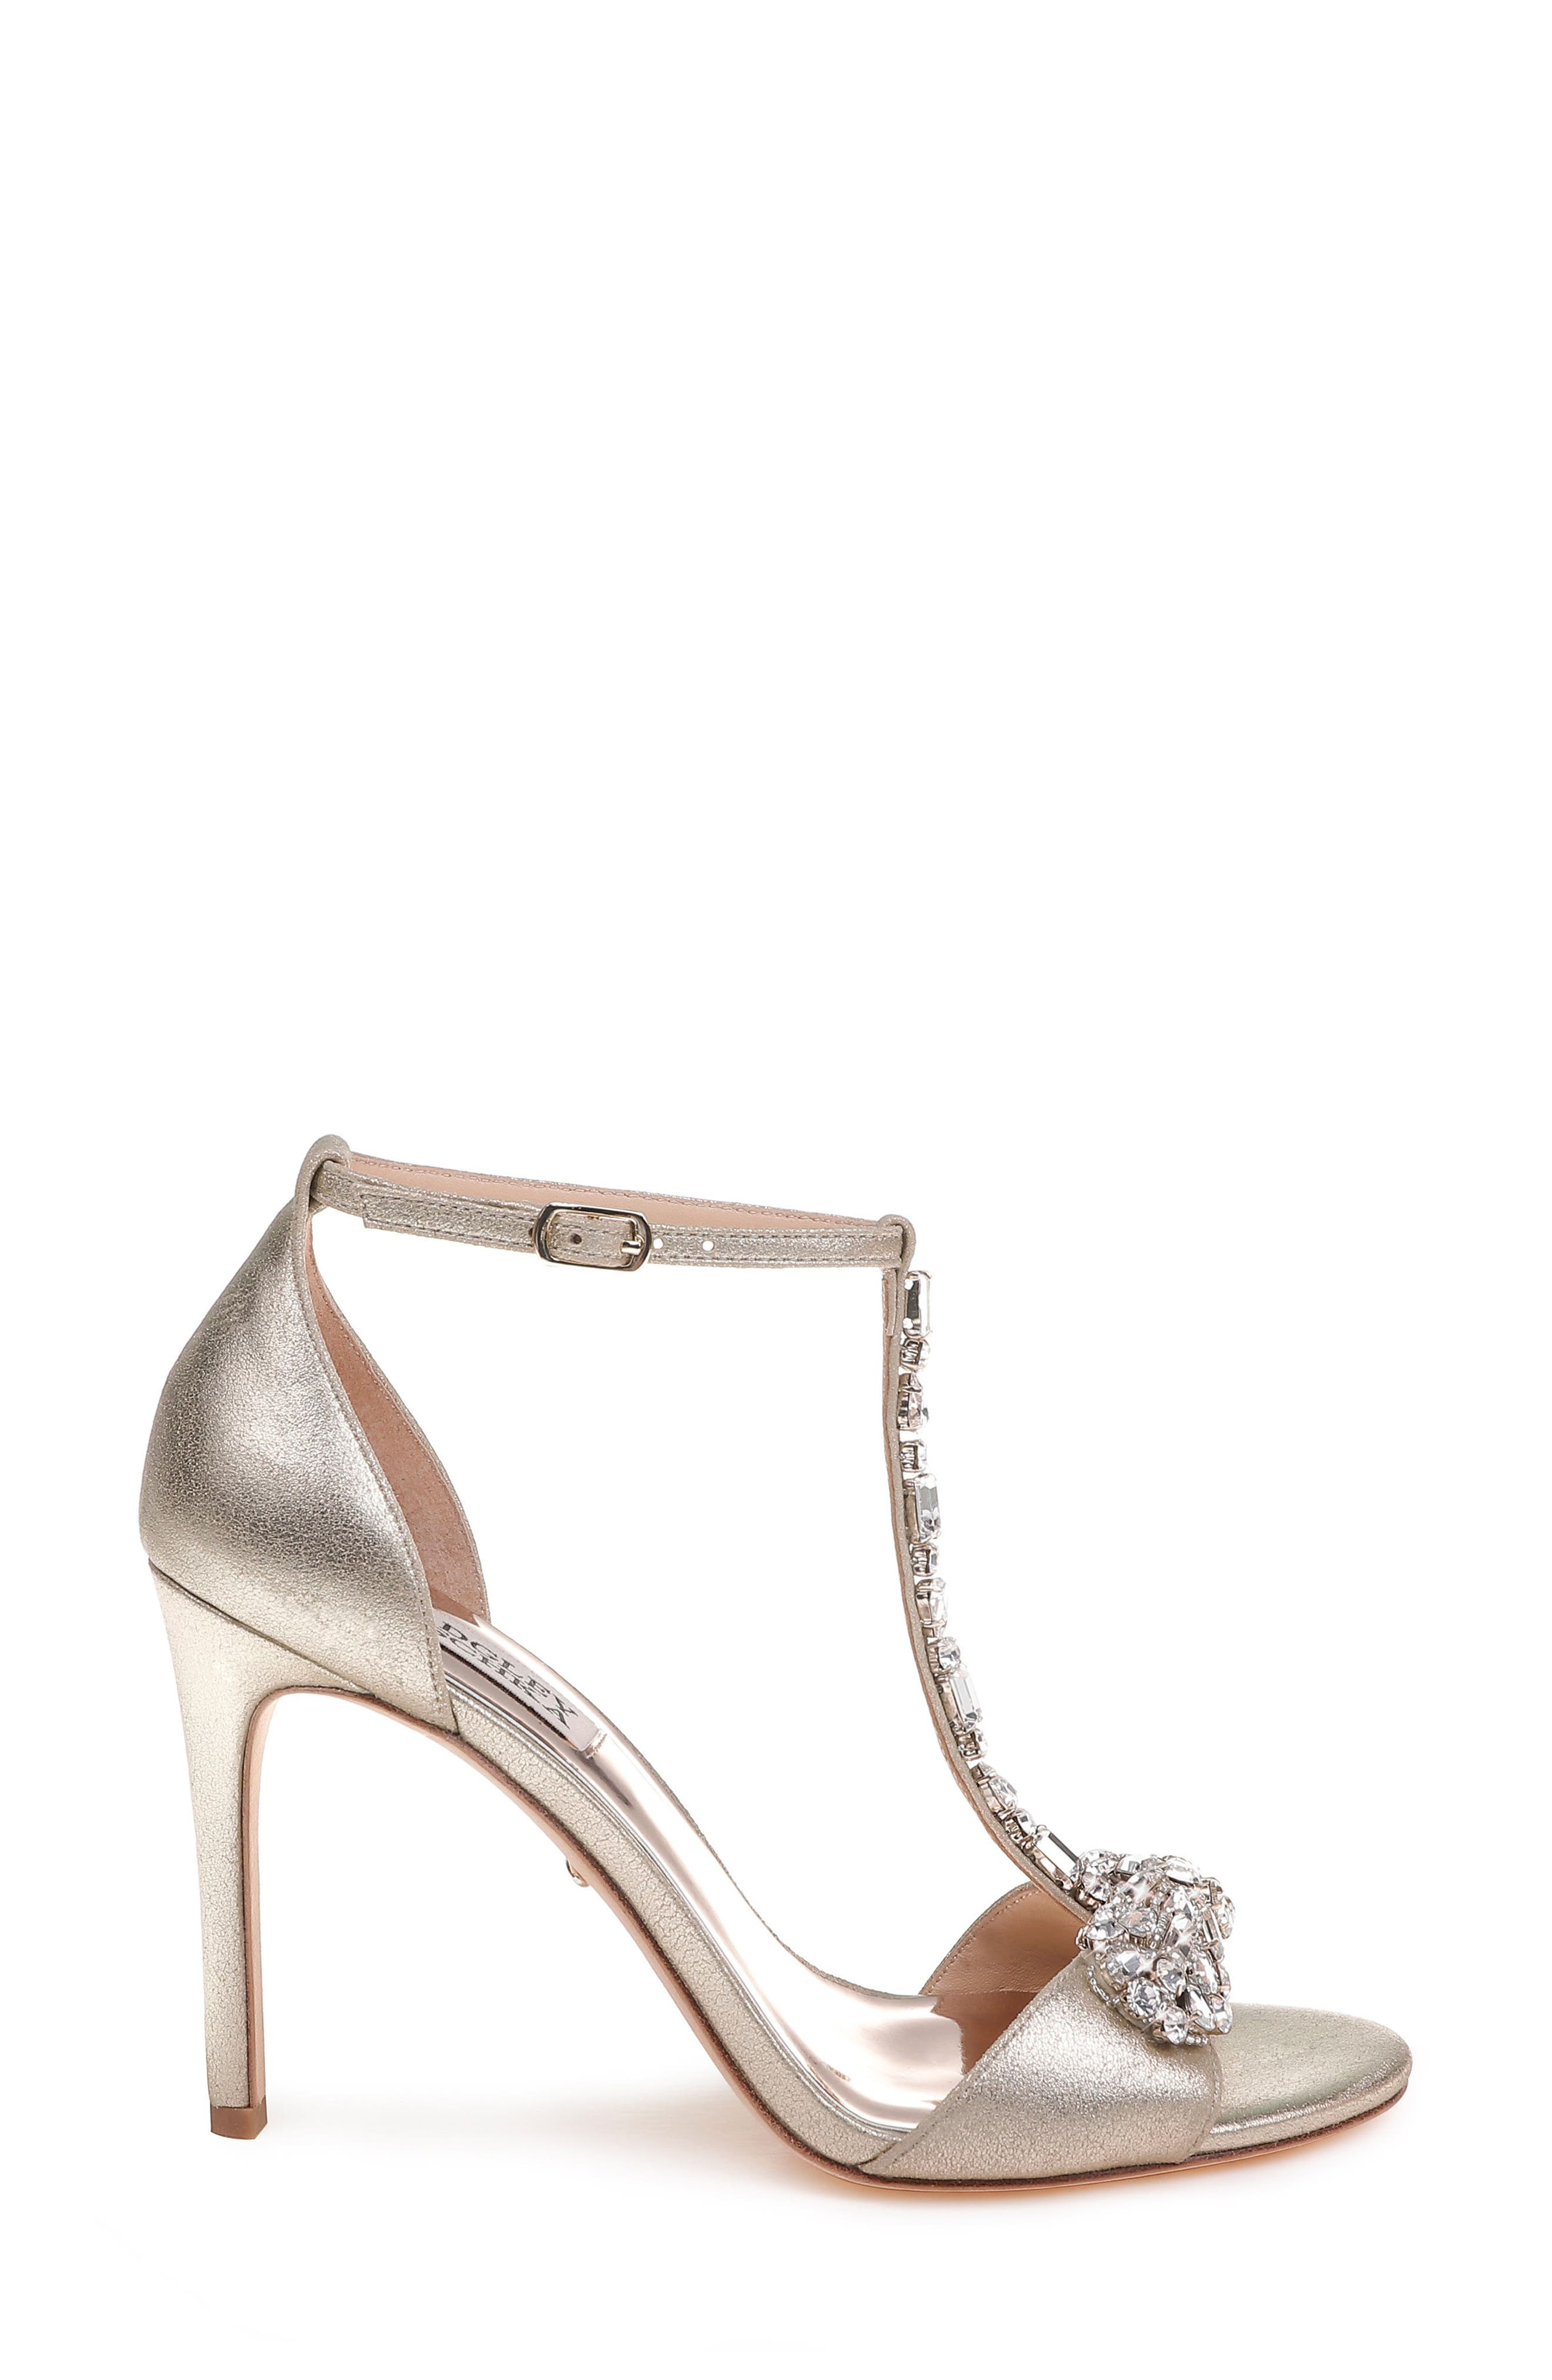 Pascale T-Strap Sandal,                             Alternate thumbnail 3, color,                             PLATINUM METALLIC SUEDE